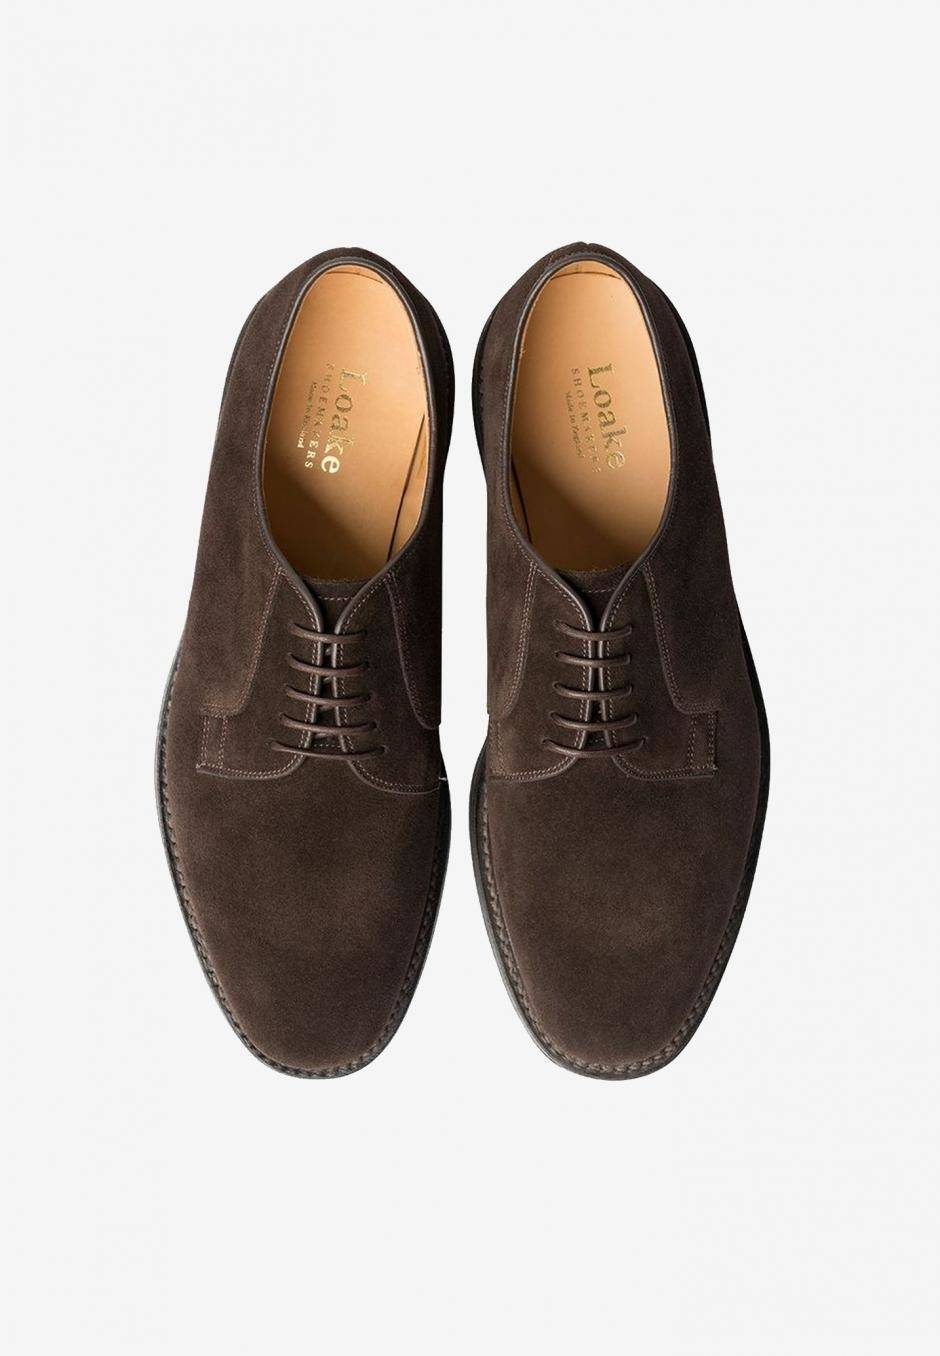 Loake Plain Derby Dark Brown Suede